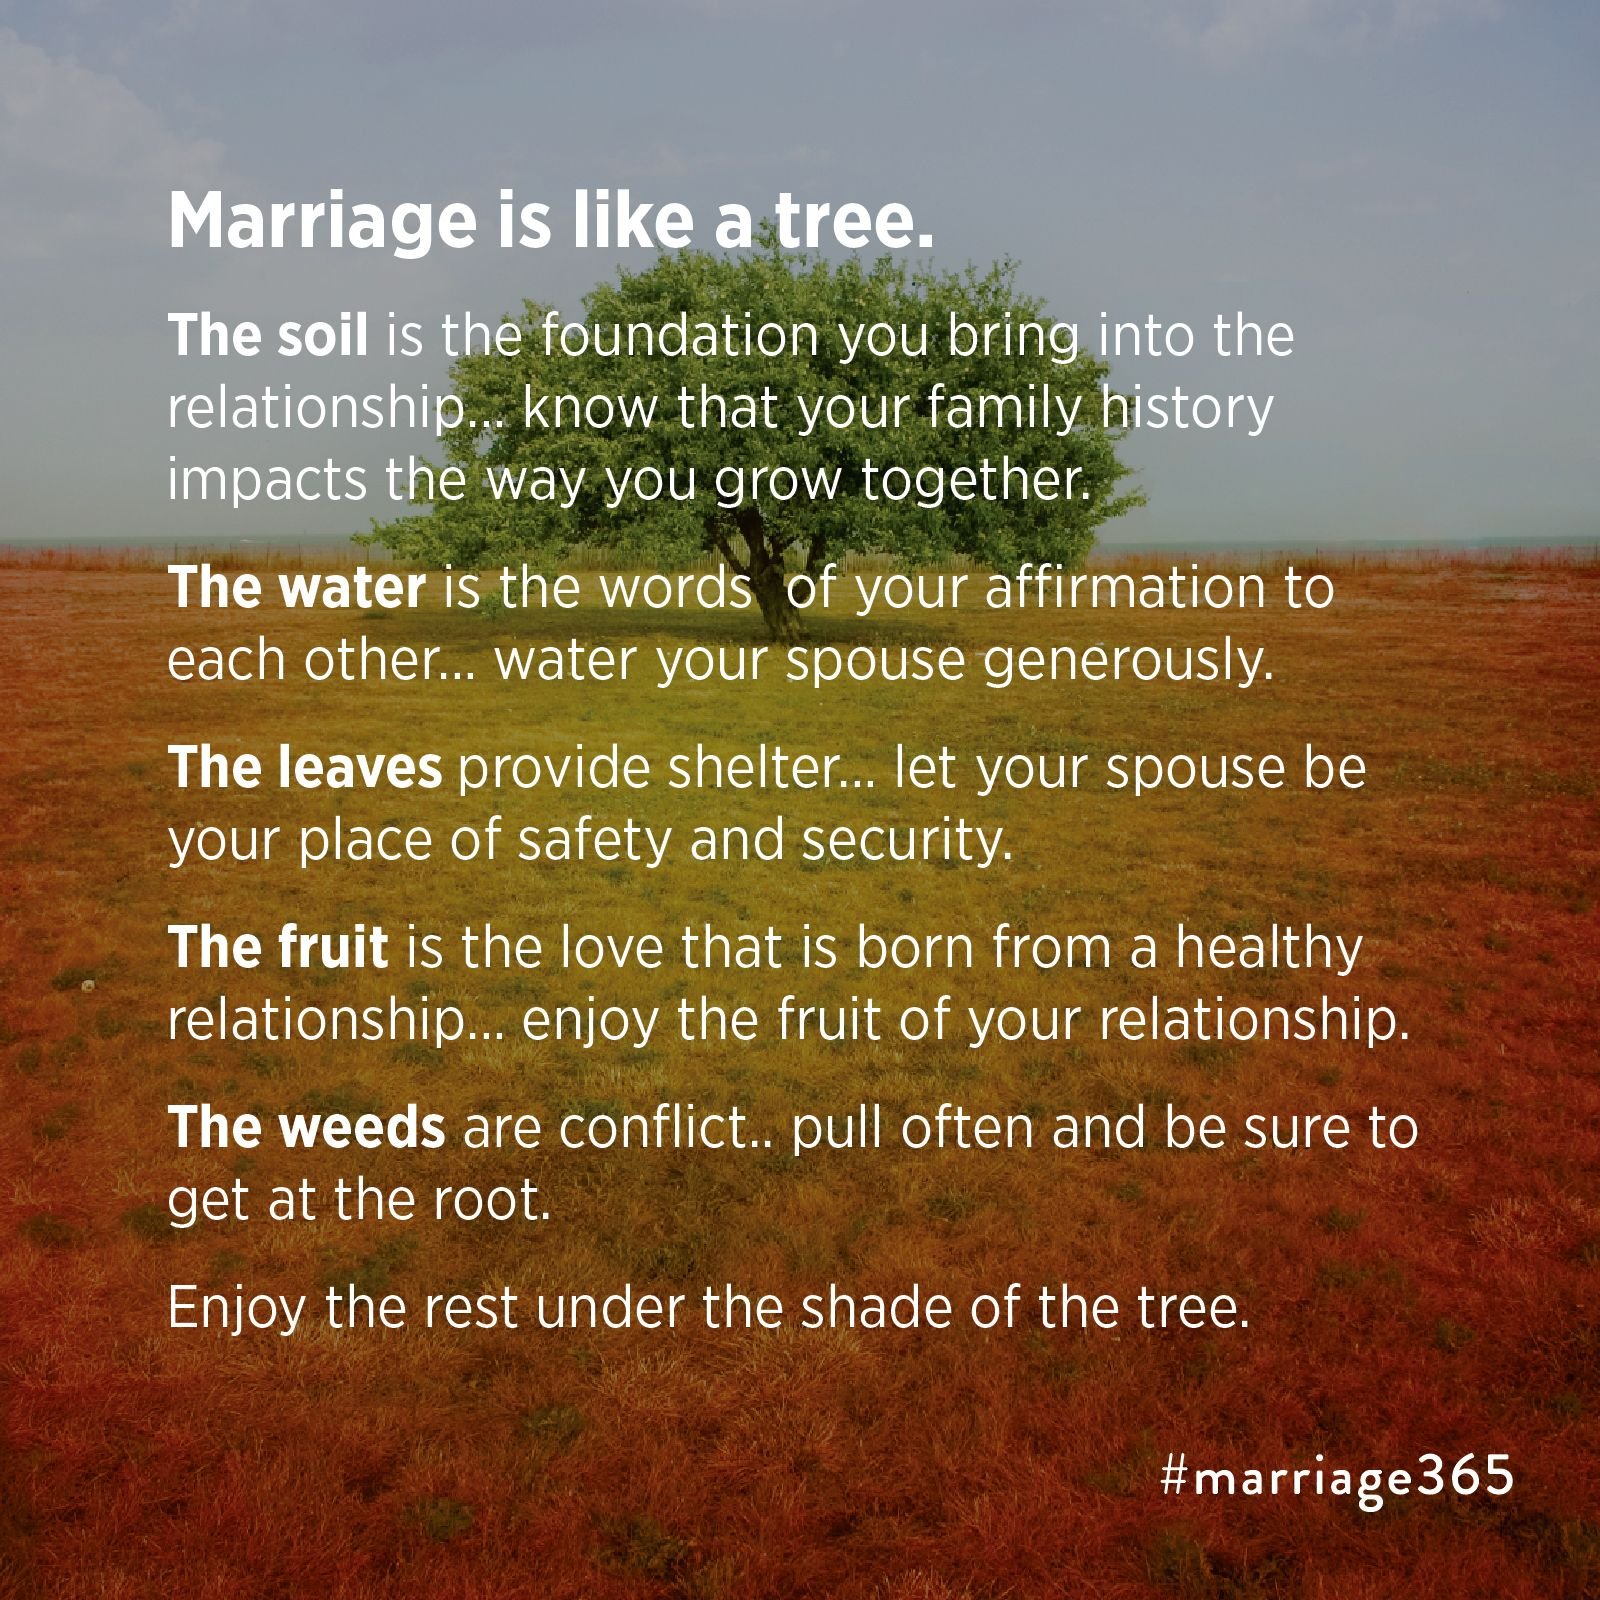 Marriage Is Like A Tree Marriage Advice Tips And Tools On Our